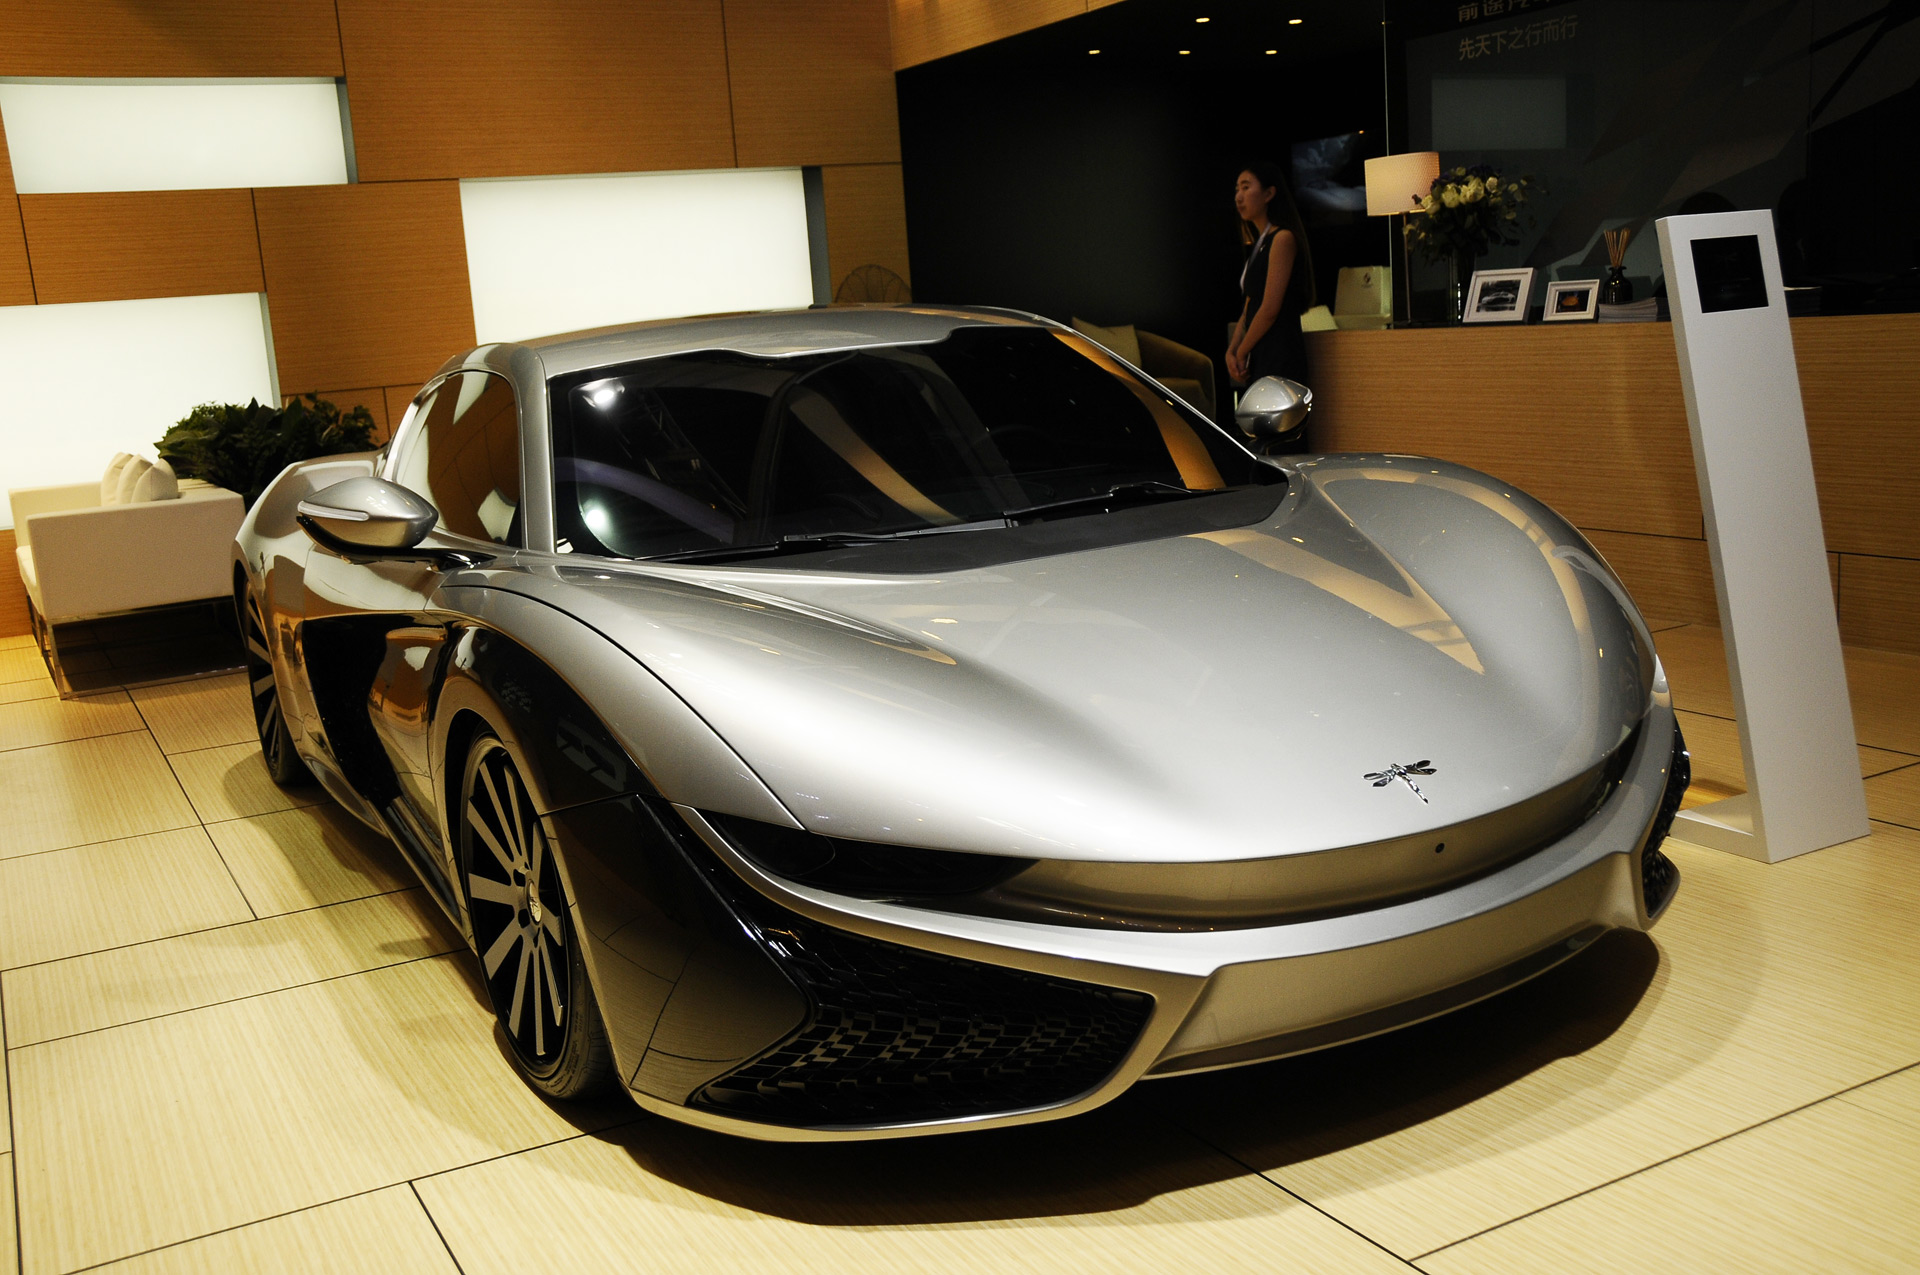 Electric Car Startup Qiantu Eyes US For K50 Sports Car